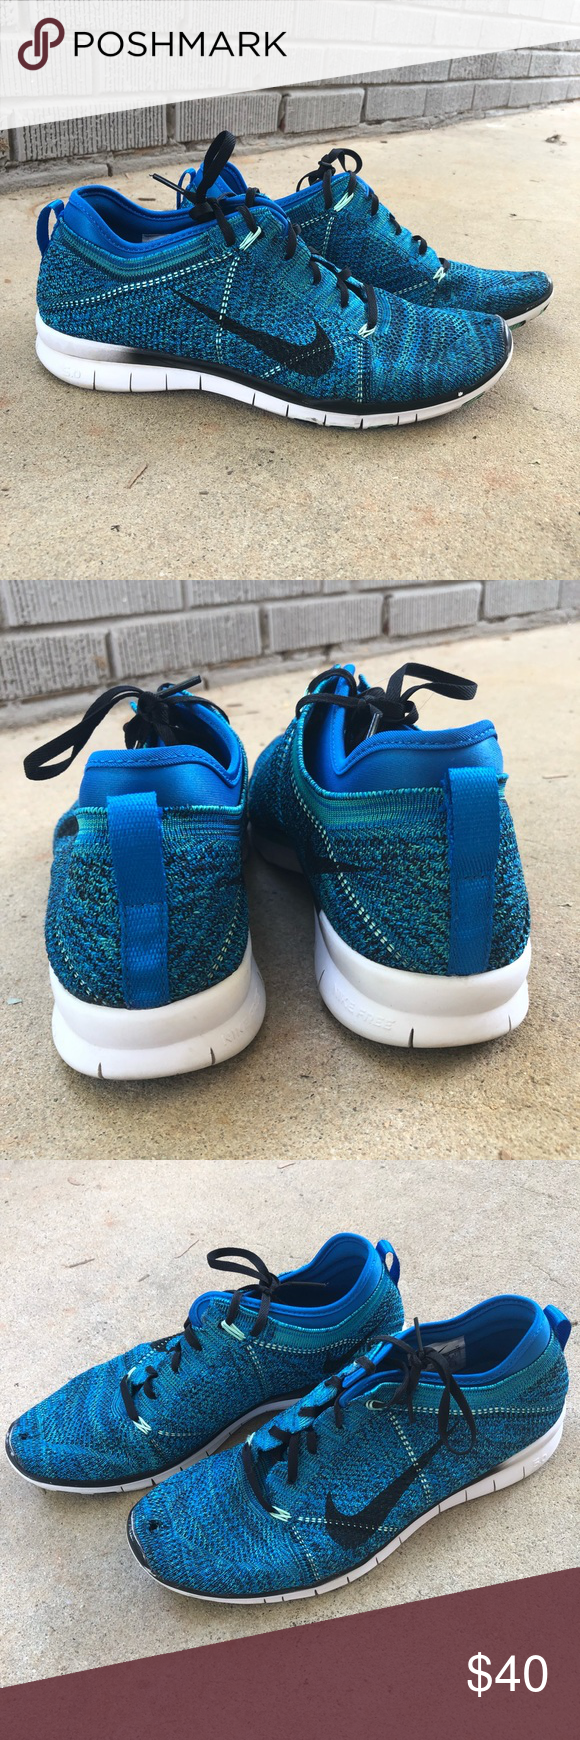 Nike Fly Knit running shoes Royal blue